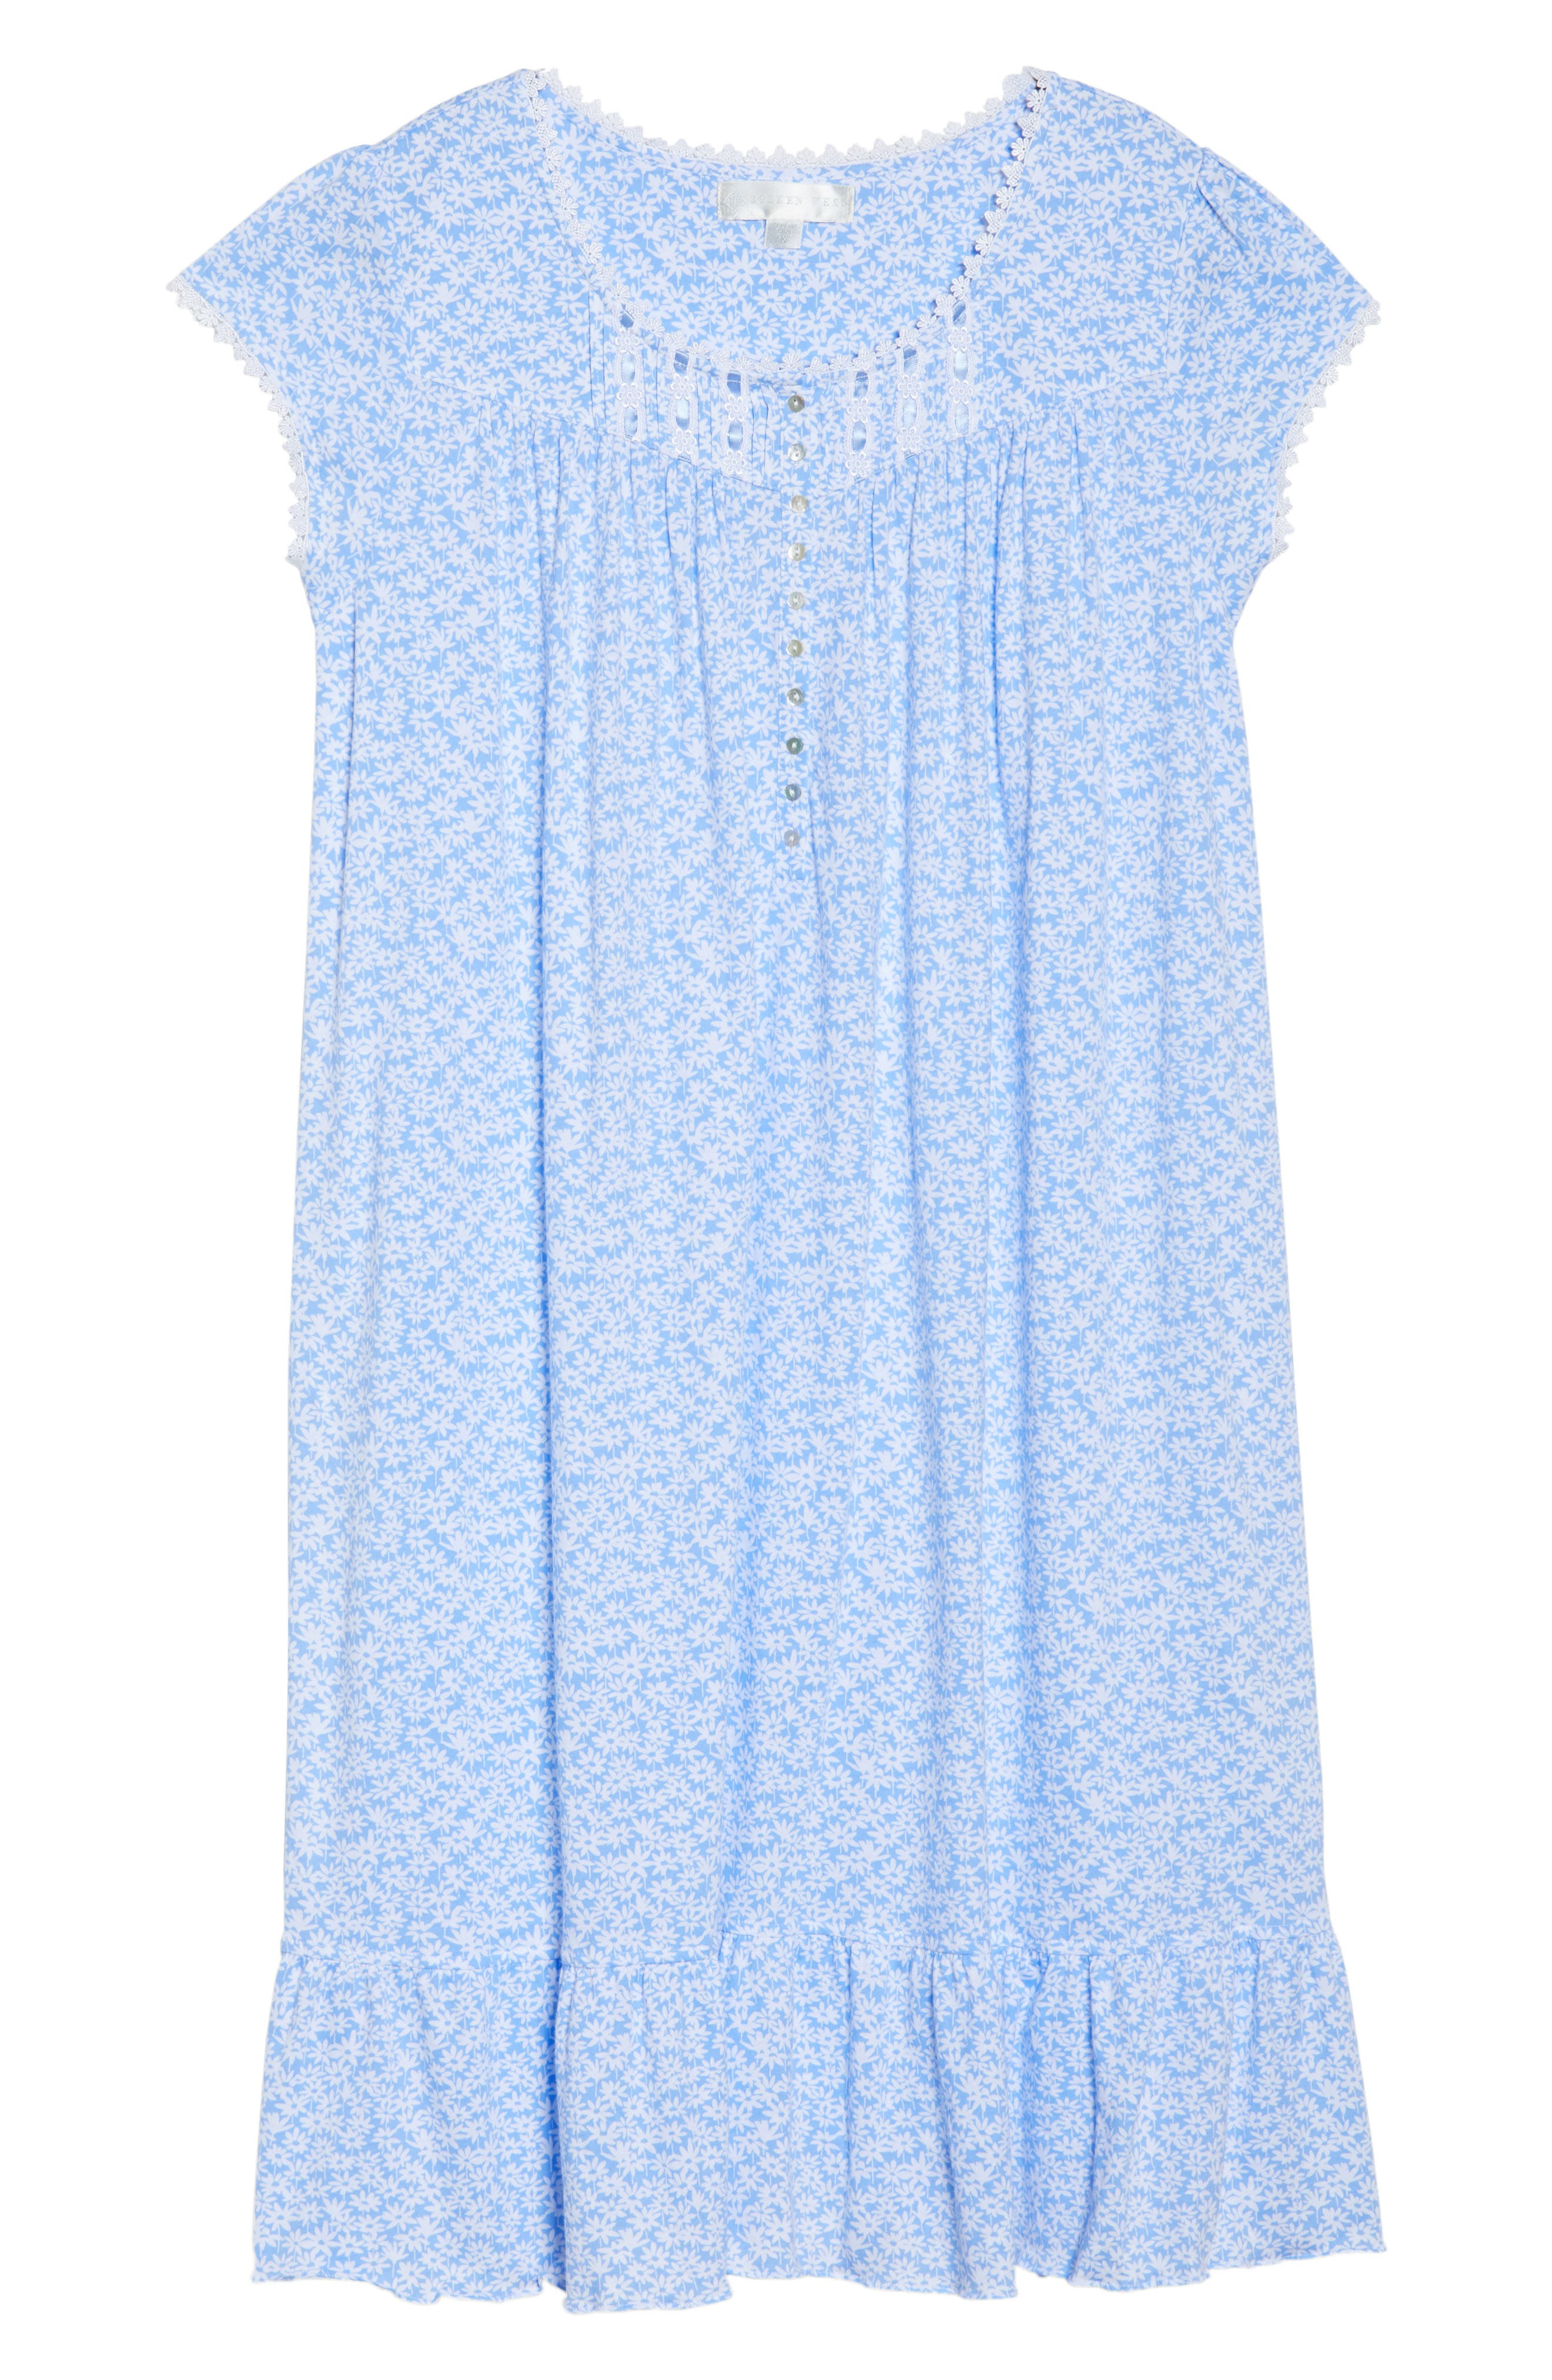 Cotton Jersey Waltz Nightgown,                             Alternate thumbnail 4, color,                             Blue White Daisies